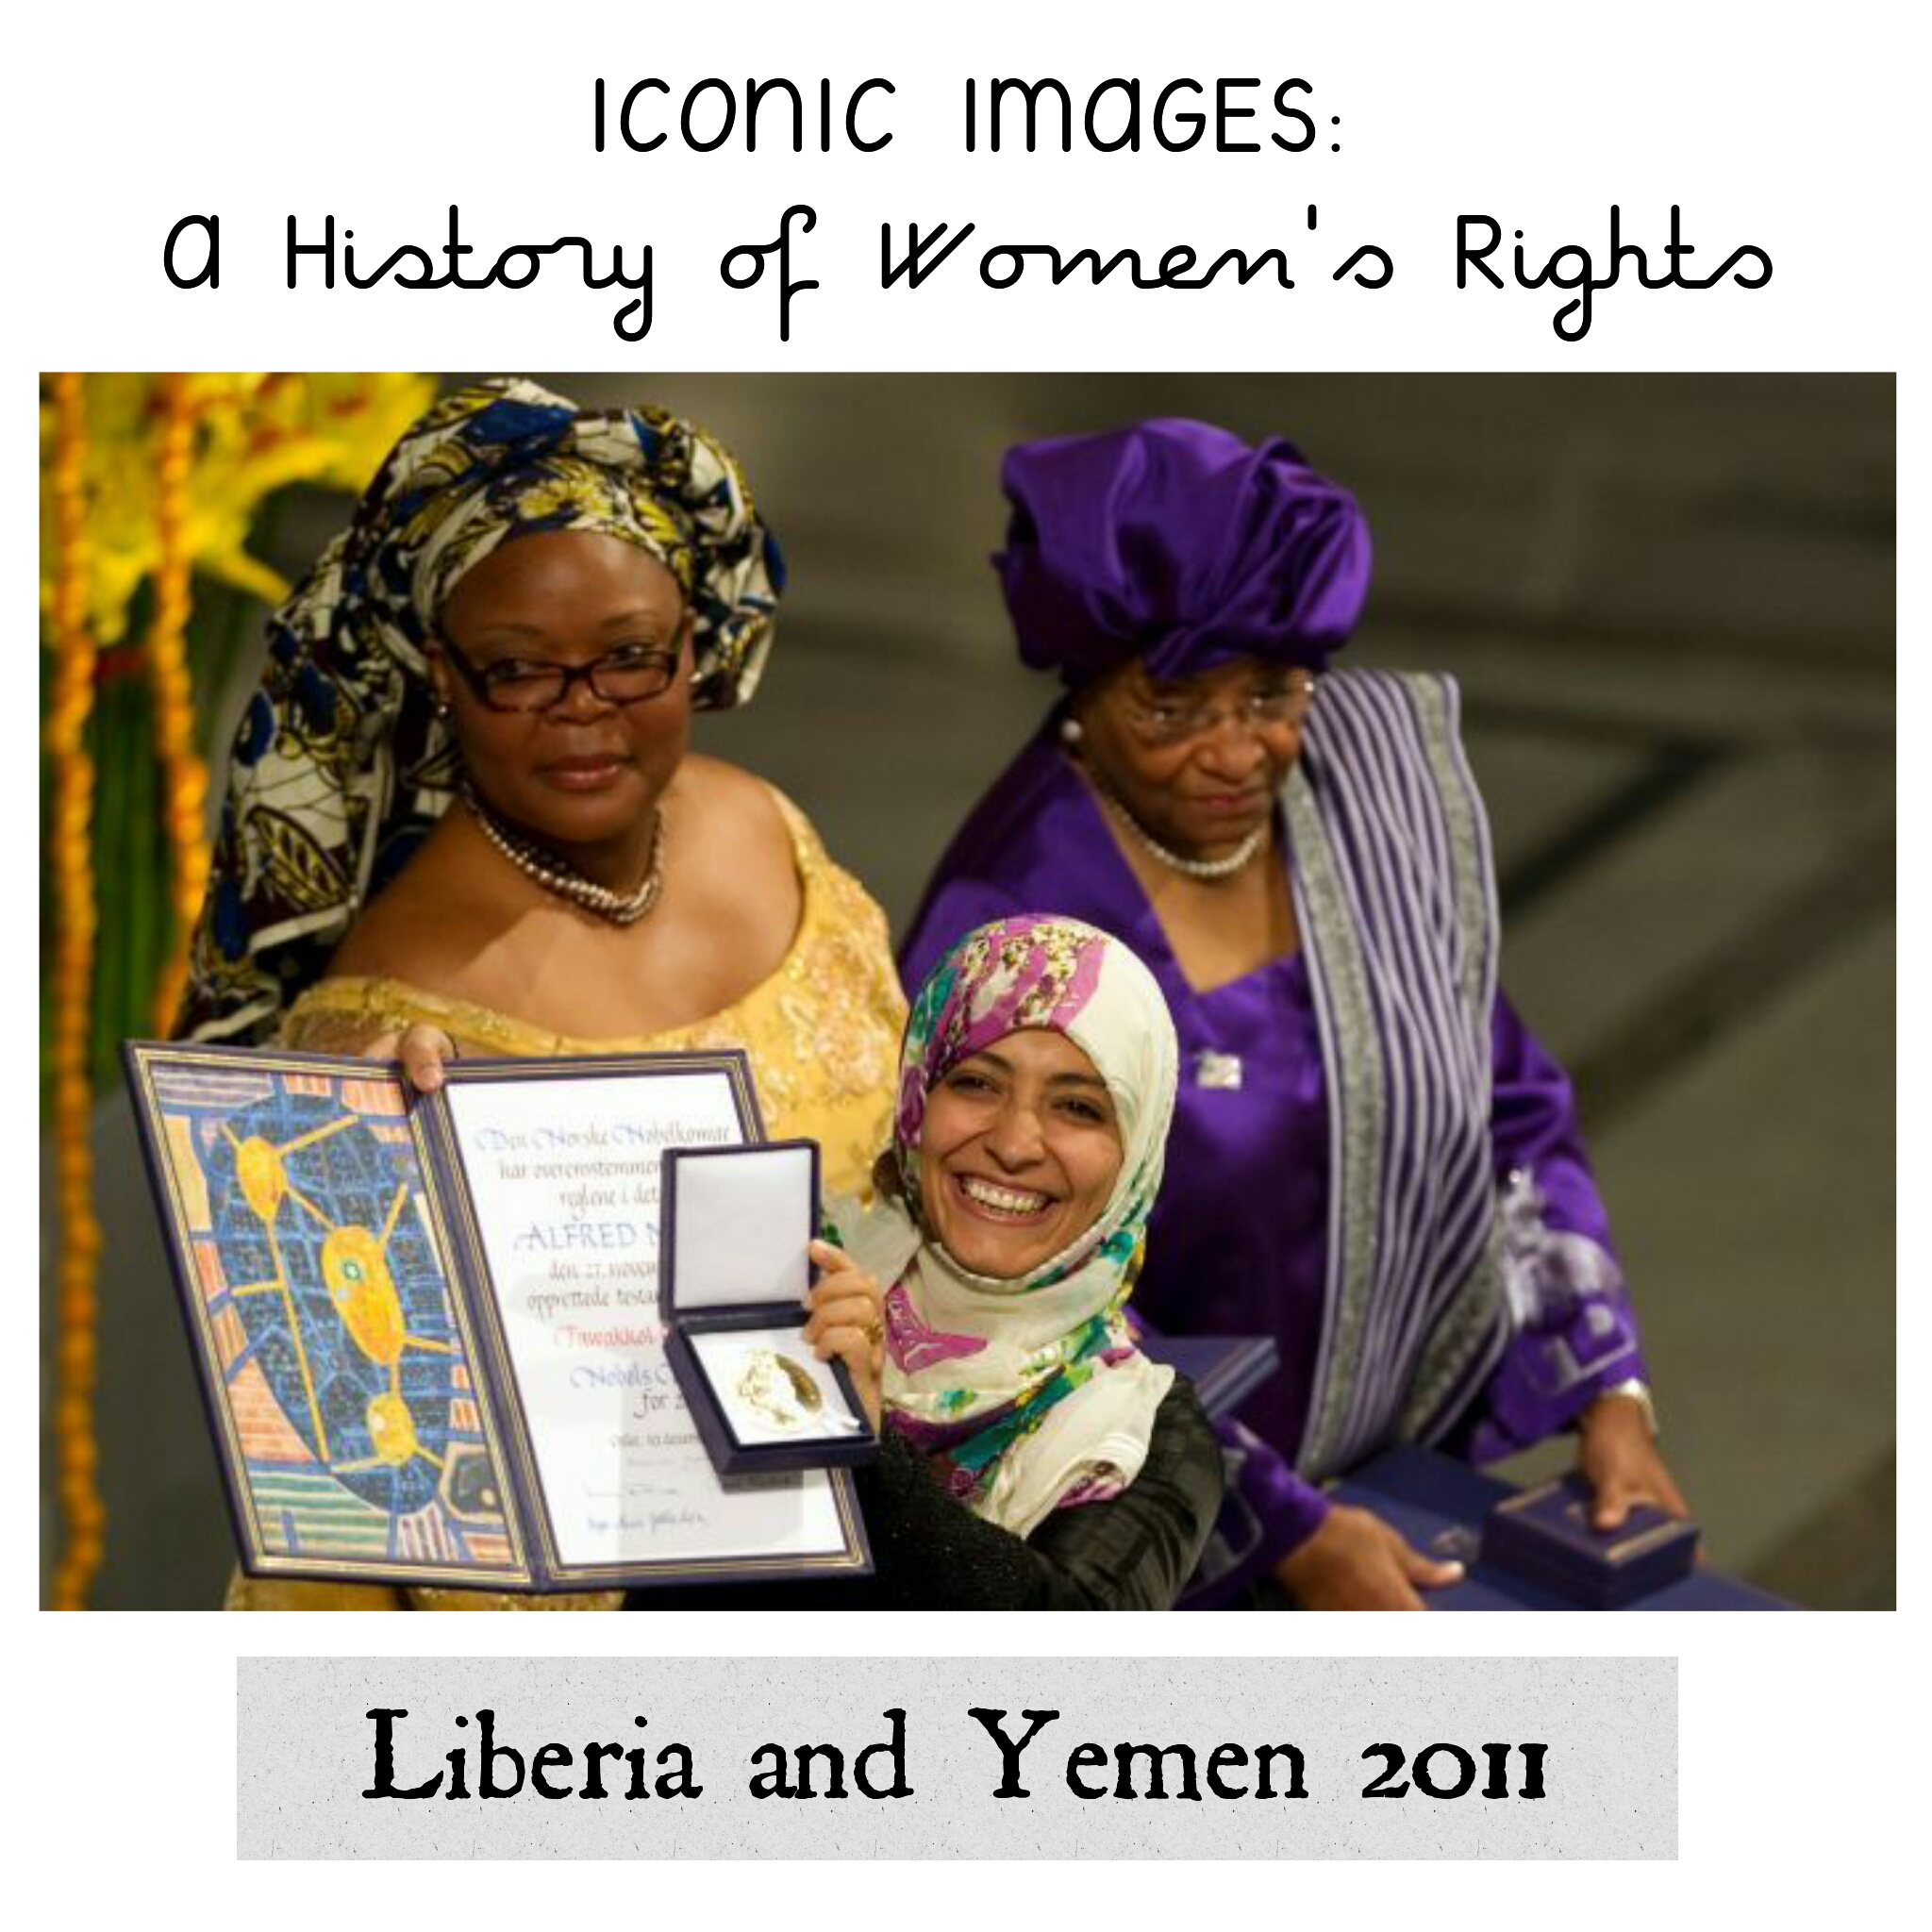 Three Remarkable Women win the Nobel Peace Prize, 2011 - Tawakkul Karman [seen holding the award in this photo] is a leading women's rights and democracy activist in Yemen, so vocal in her stance that she has been targeted by government. She is also the first Arab women to win the Nobel Peace Prize. Liberian president Ellen Johnson Sirleaf and compatriot Leymah Gbowee shared the award with Karman. They mobilised fellow women against the country's civil war, including organising a sex strike. This award is seen as significant recognition in favour of the empowerment of women, especially in the third world. [Sourced from abc.net.au]